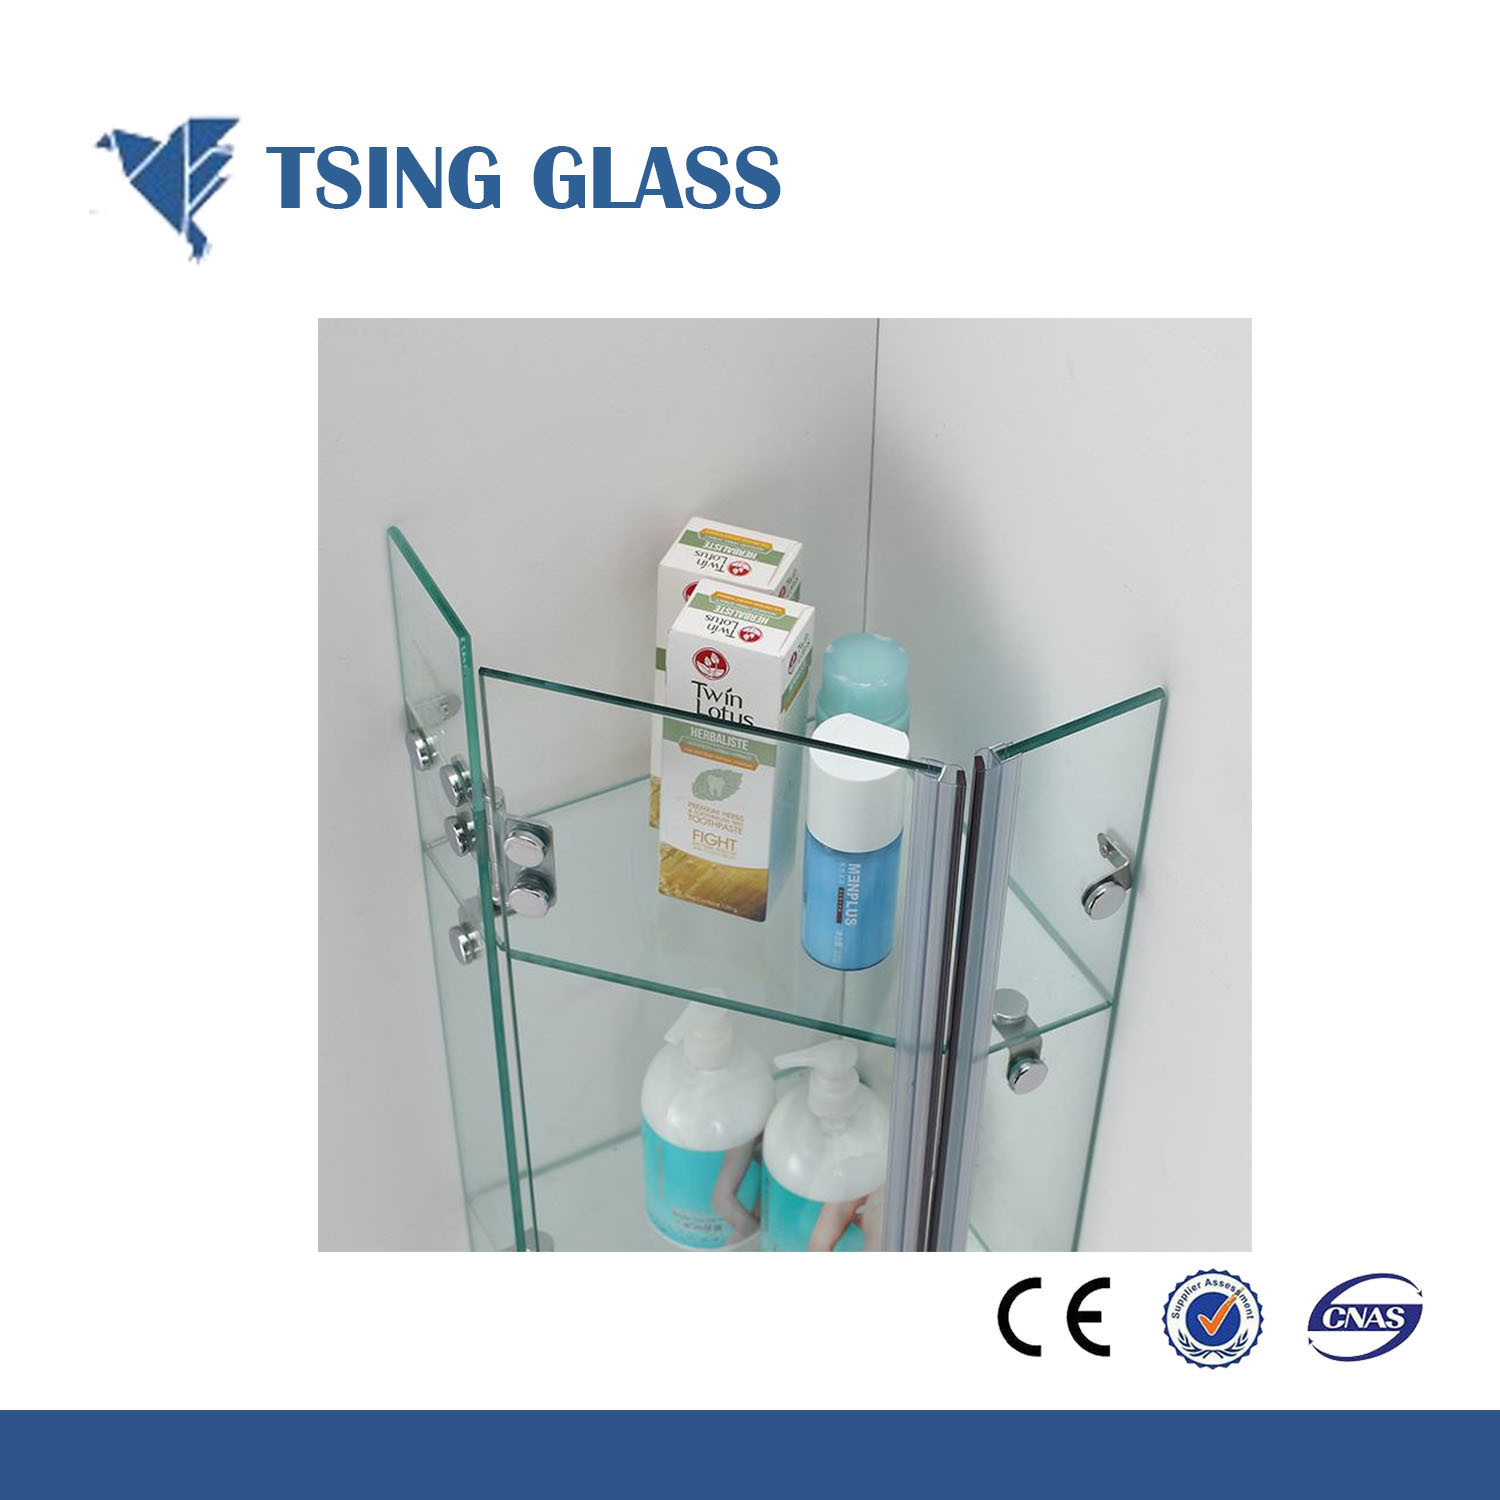 China Glass Shelves for Washing Room/Corner/Wall/Decoration - China ...